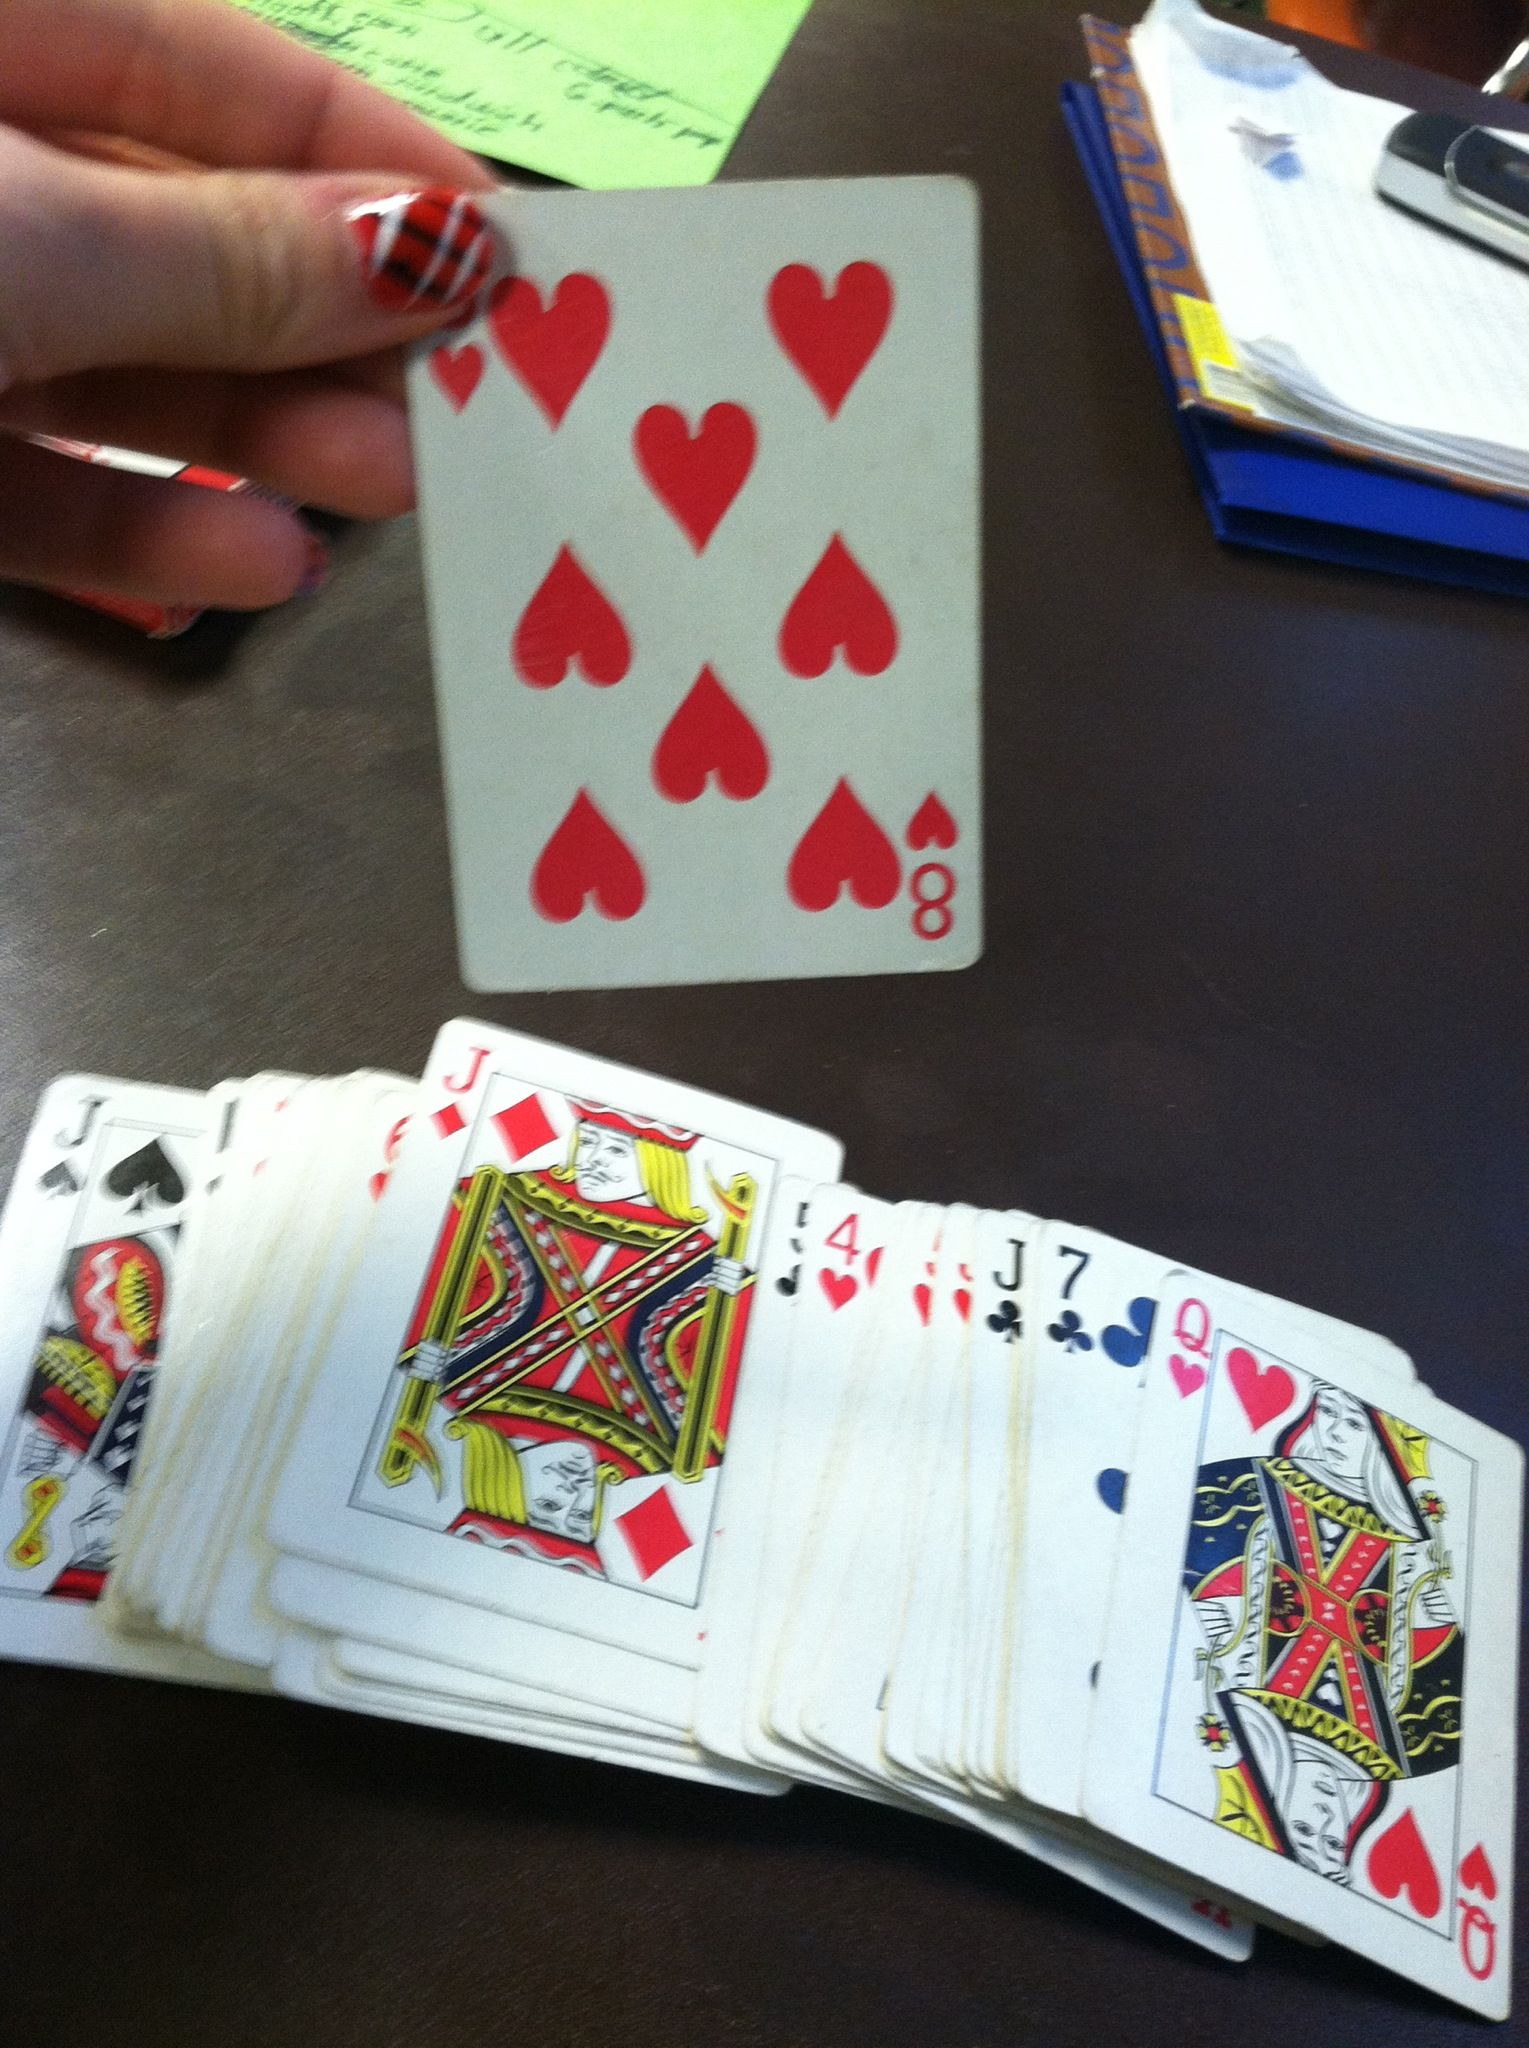 How To Do A Simple Card Trick For Kids Card Tricks For Kids Magic Card Tricks Easy Card Tricks